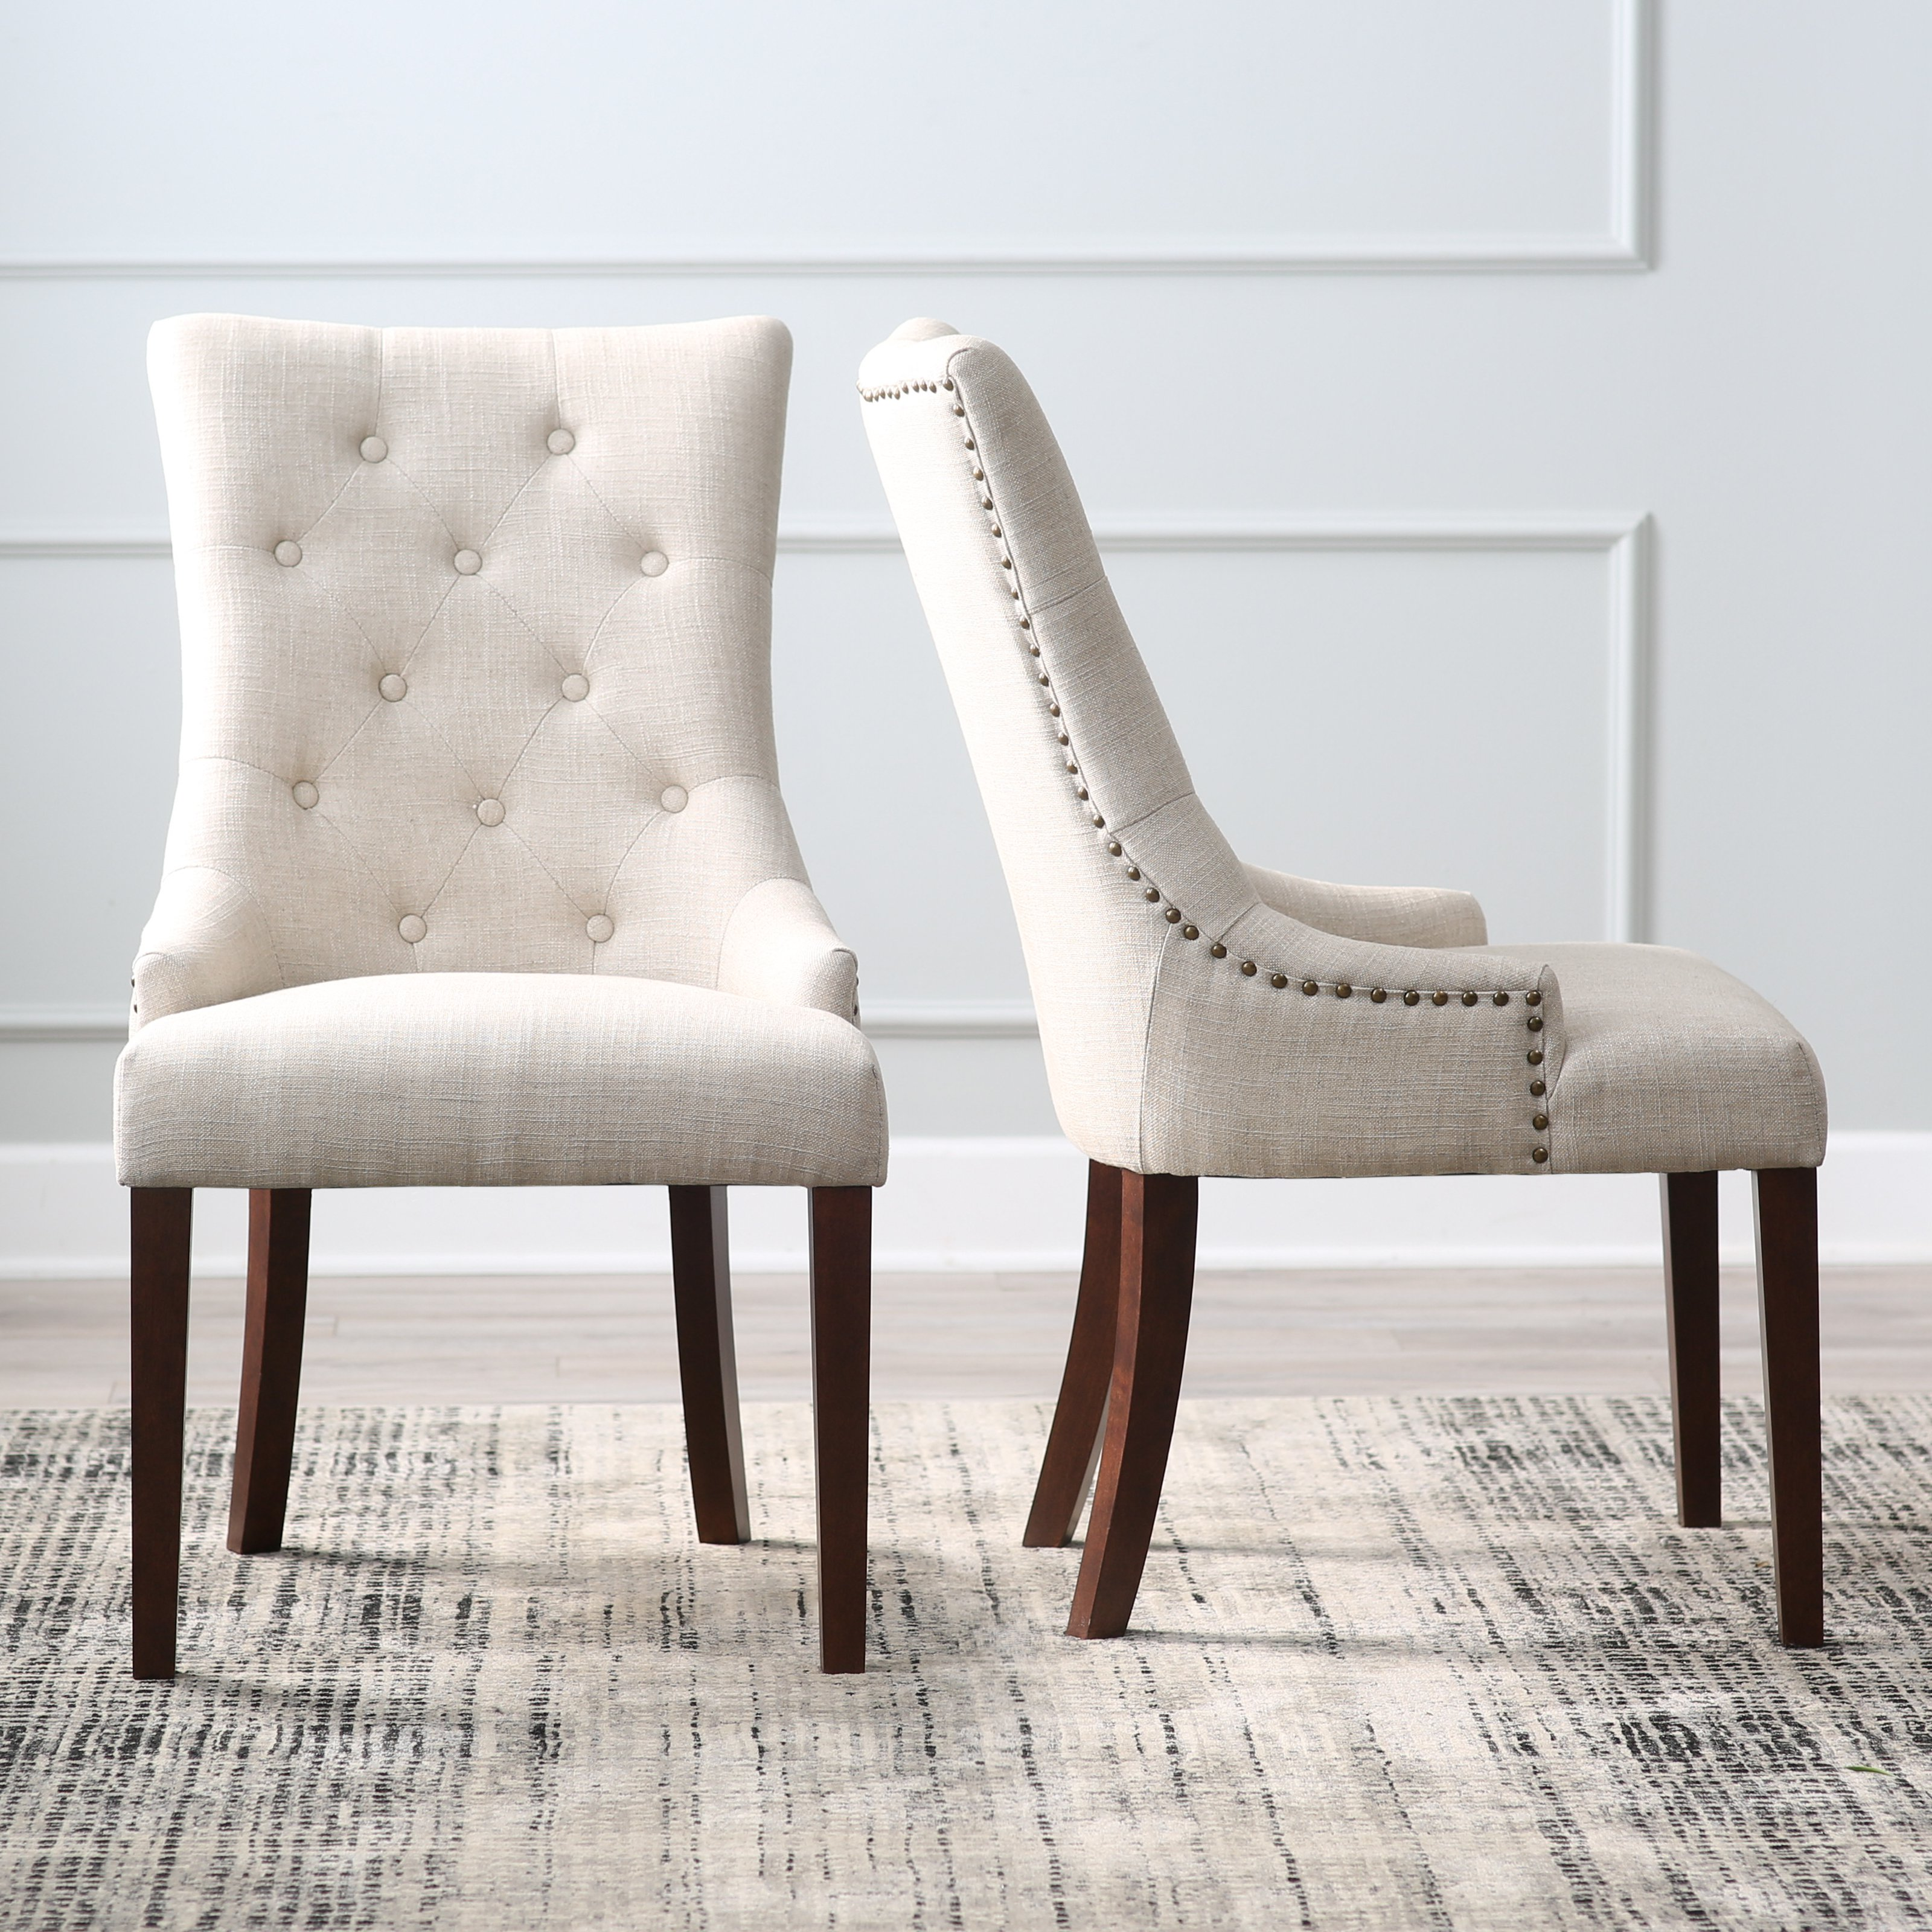 belham living thomas tufted tweed dining chairs - set of 2 | hayneedle REPOJEQ